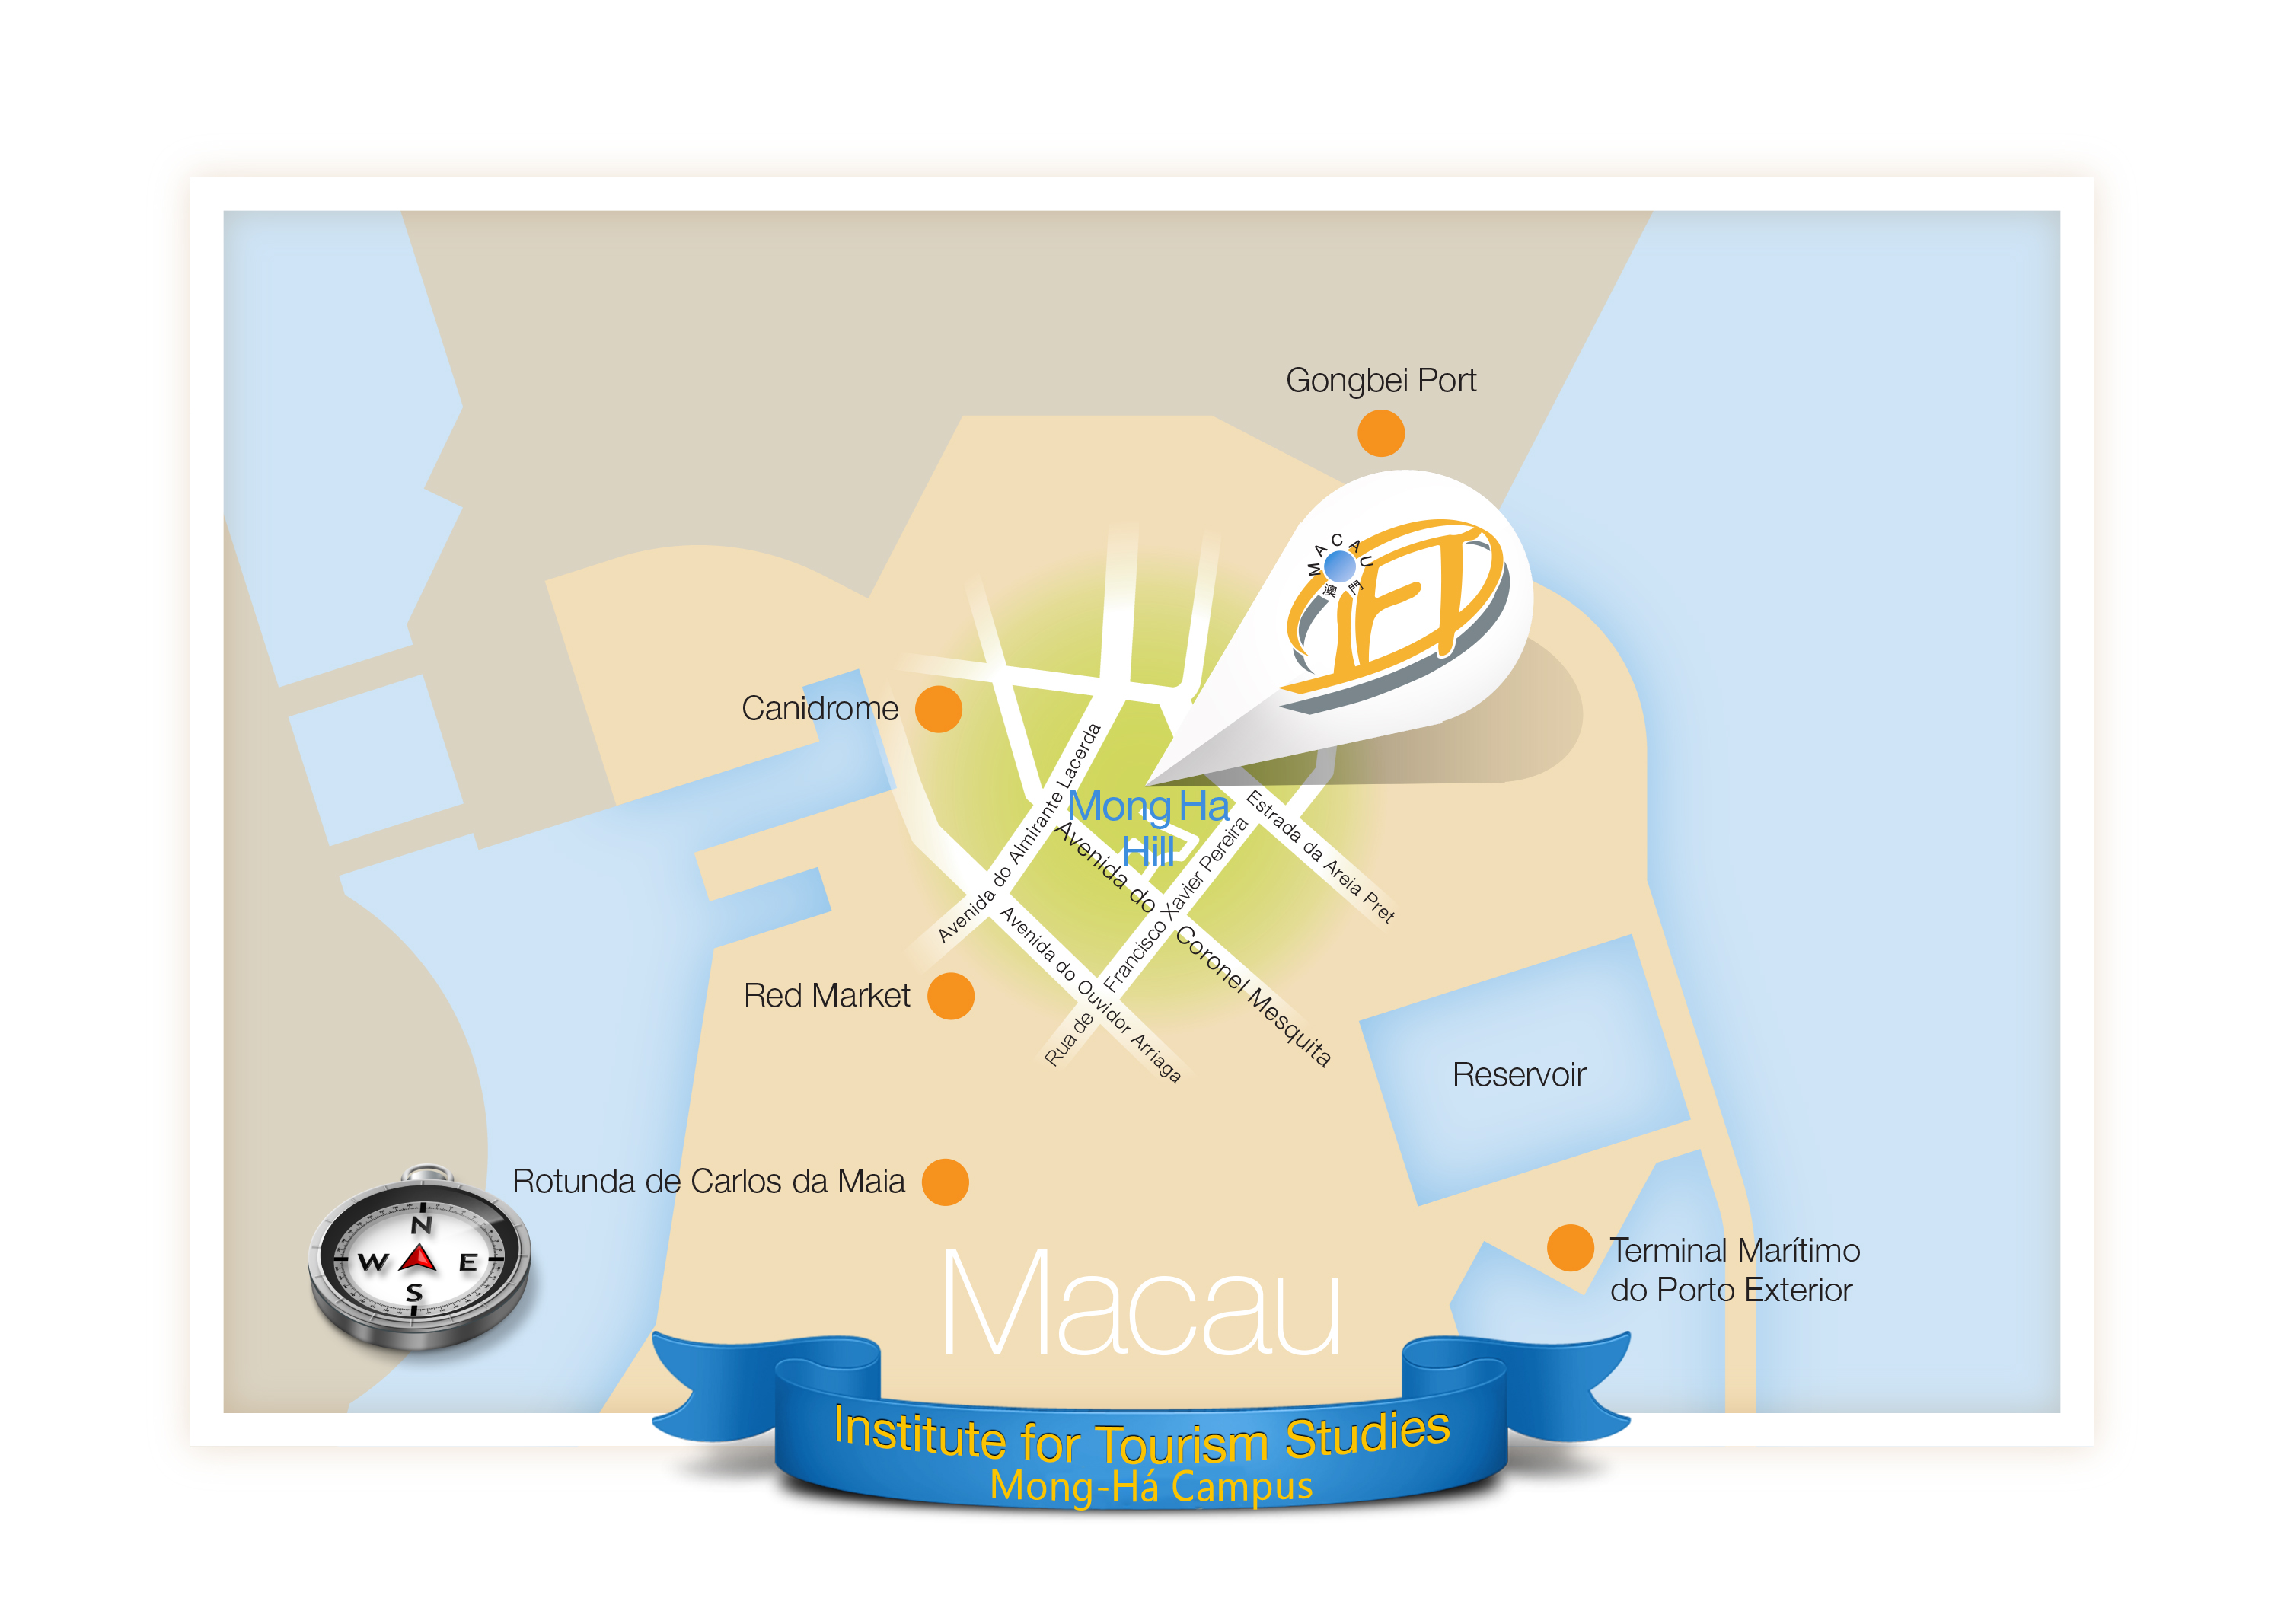 1e) Map to indicate where Macau IFT locates